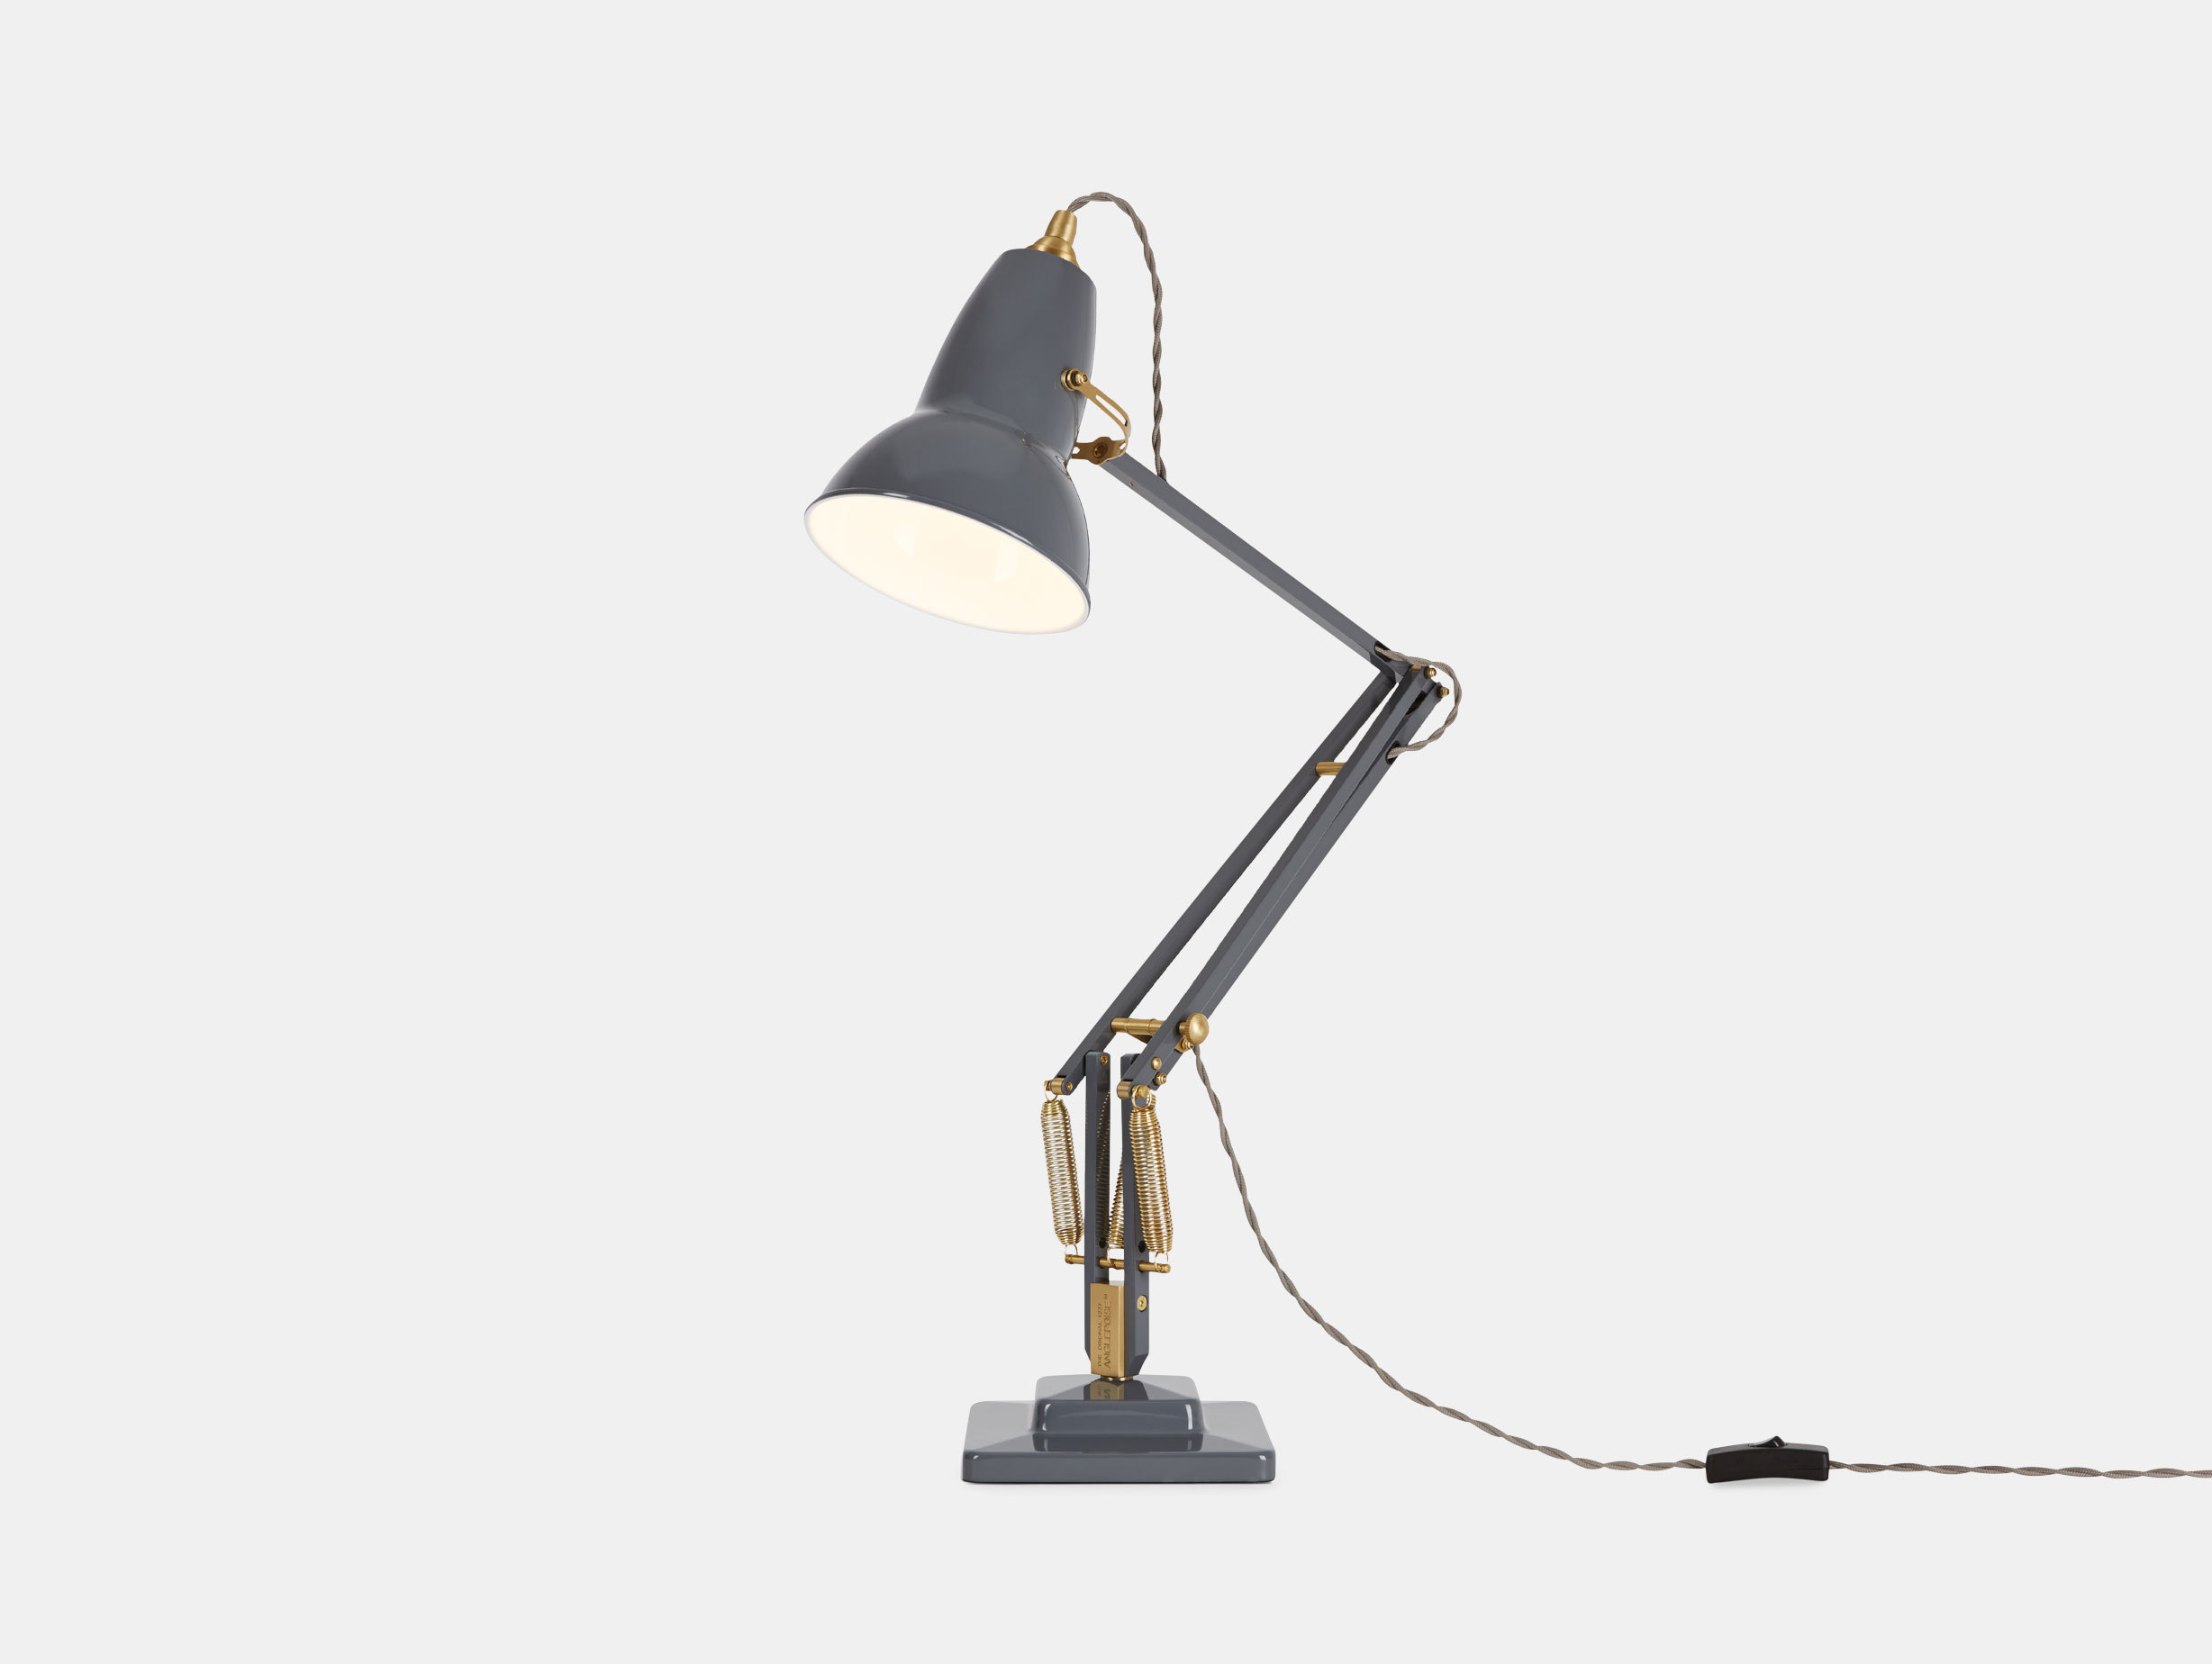 Anglepoise 1227 Brass Table Lamp image 1